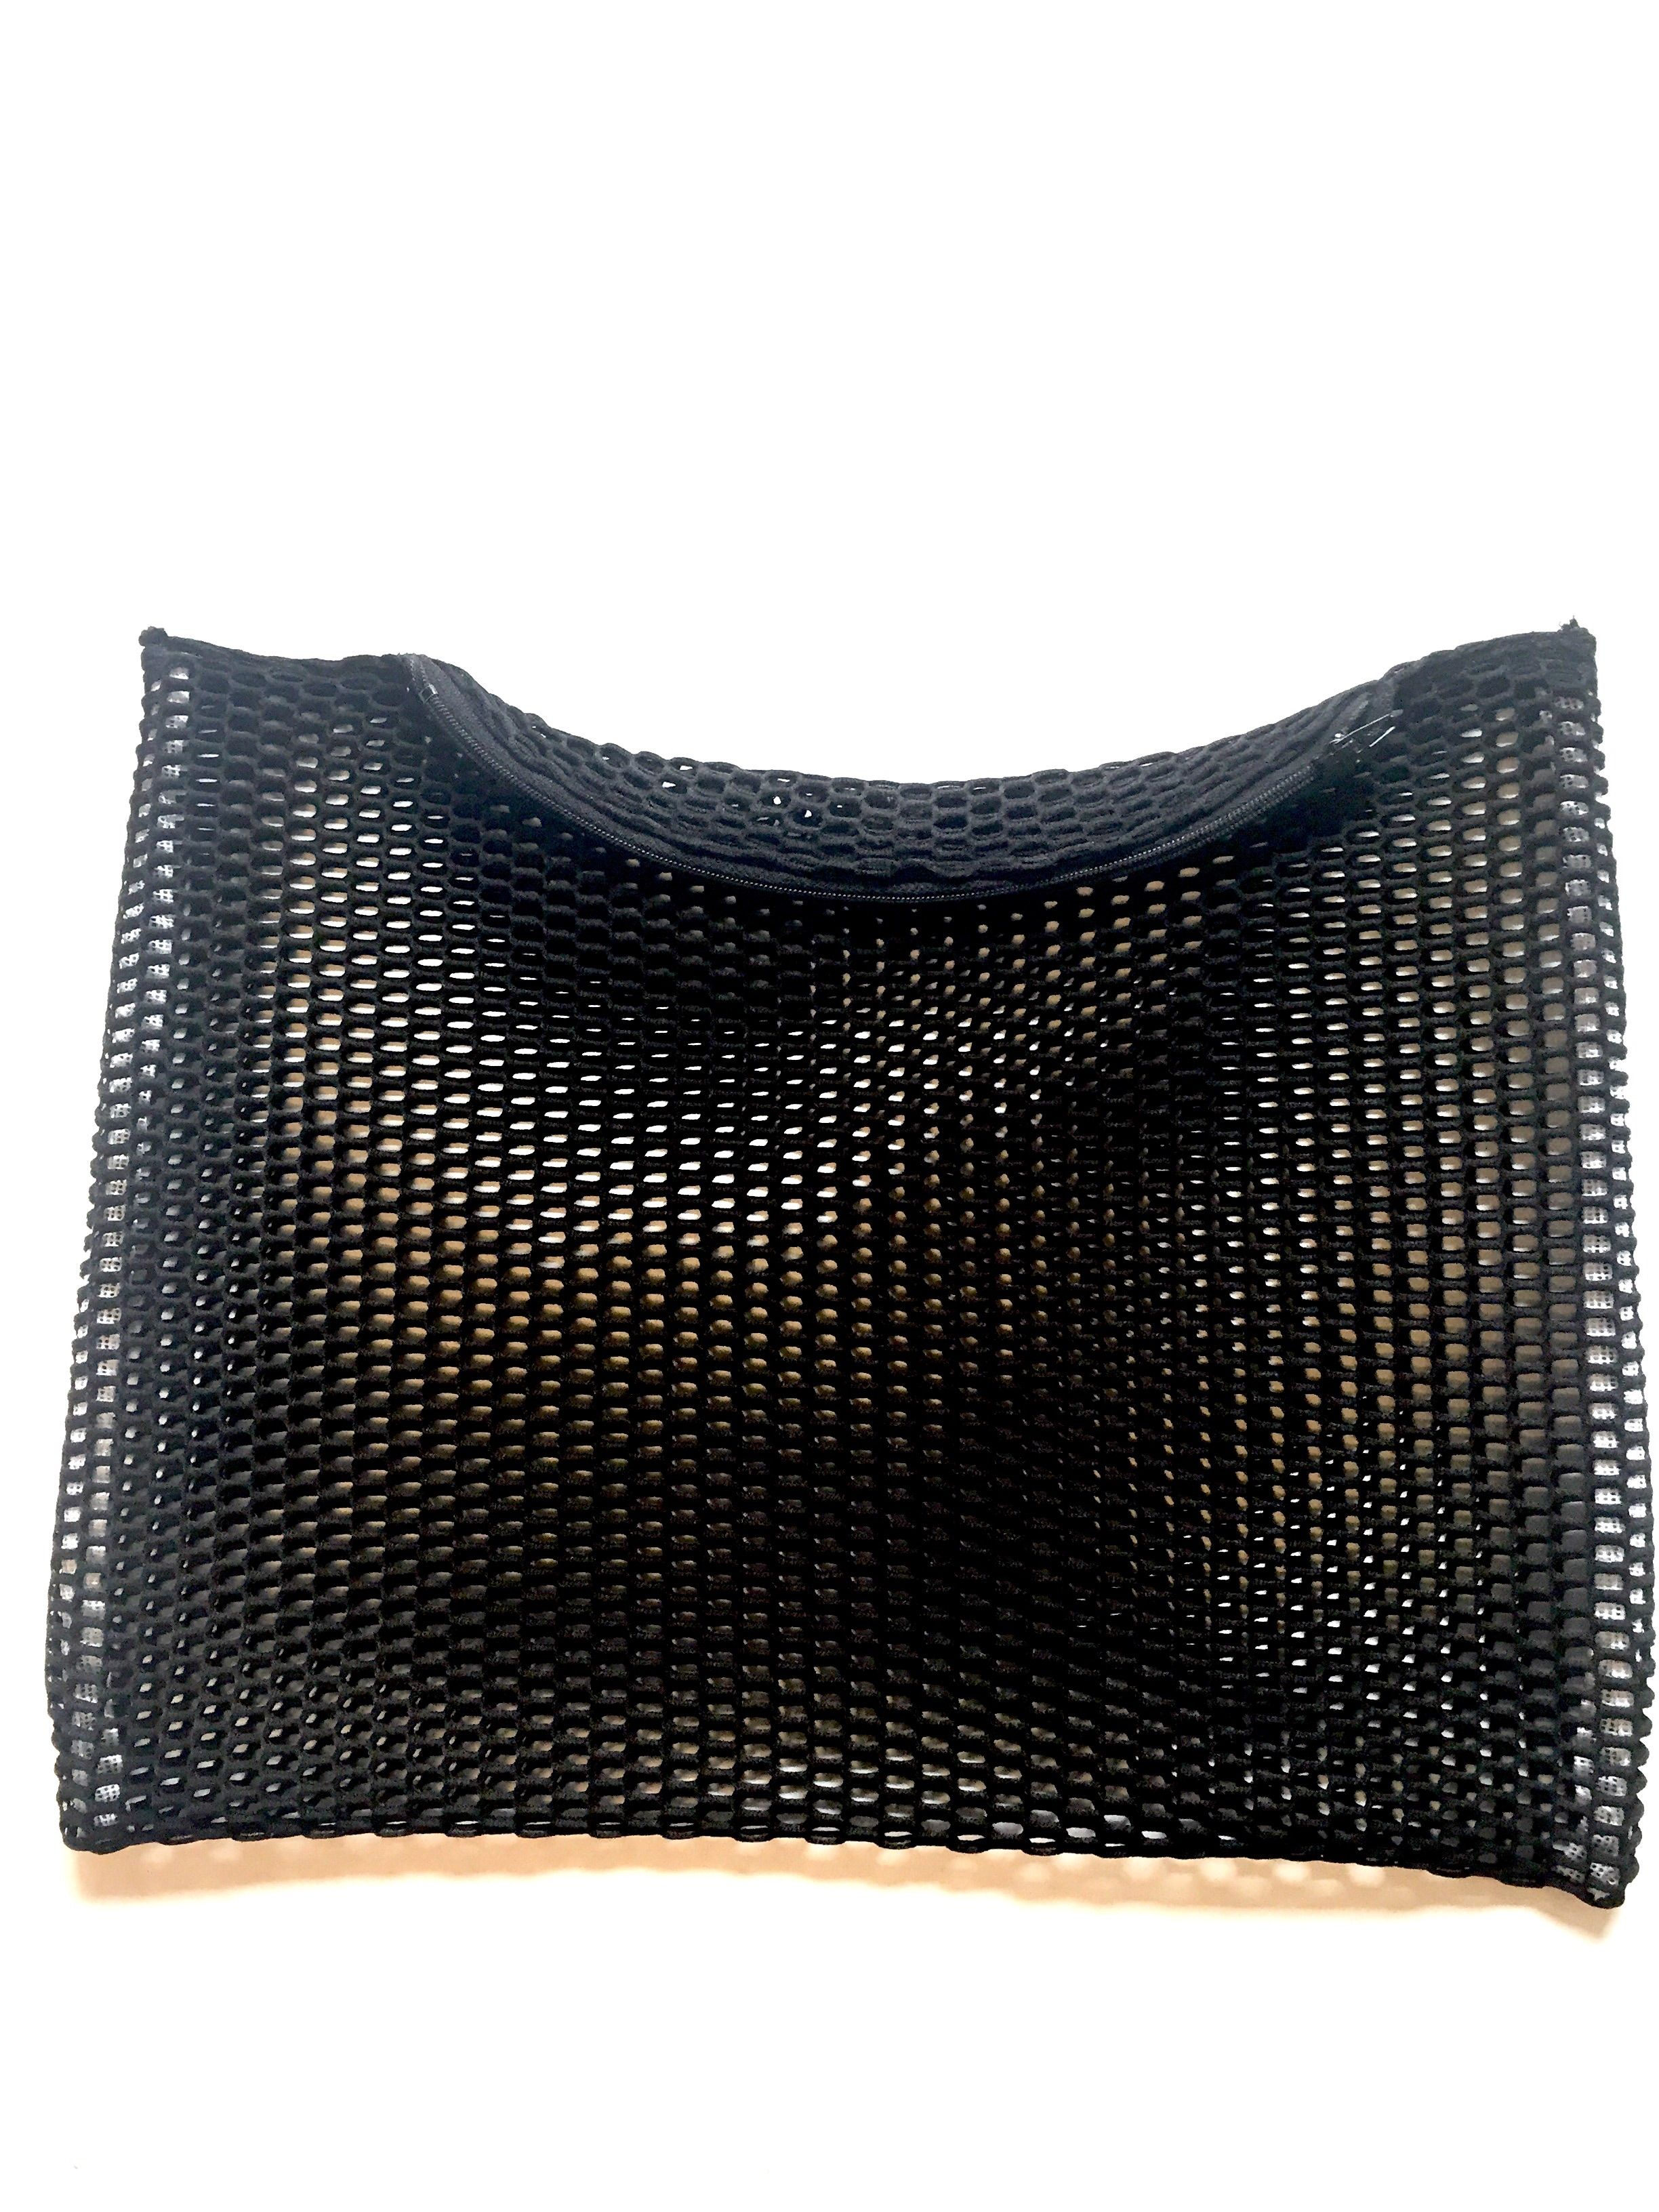 No secrets black mesh zip top clutch · Le Gendre · Online Store Powered by Storenvy